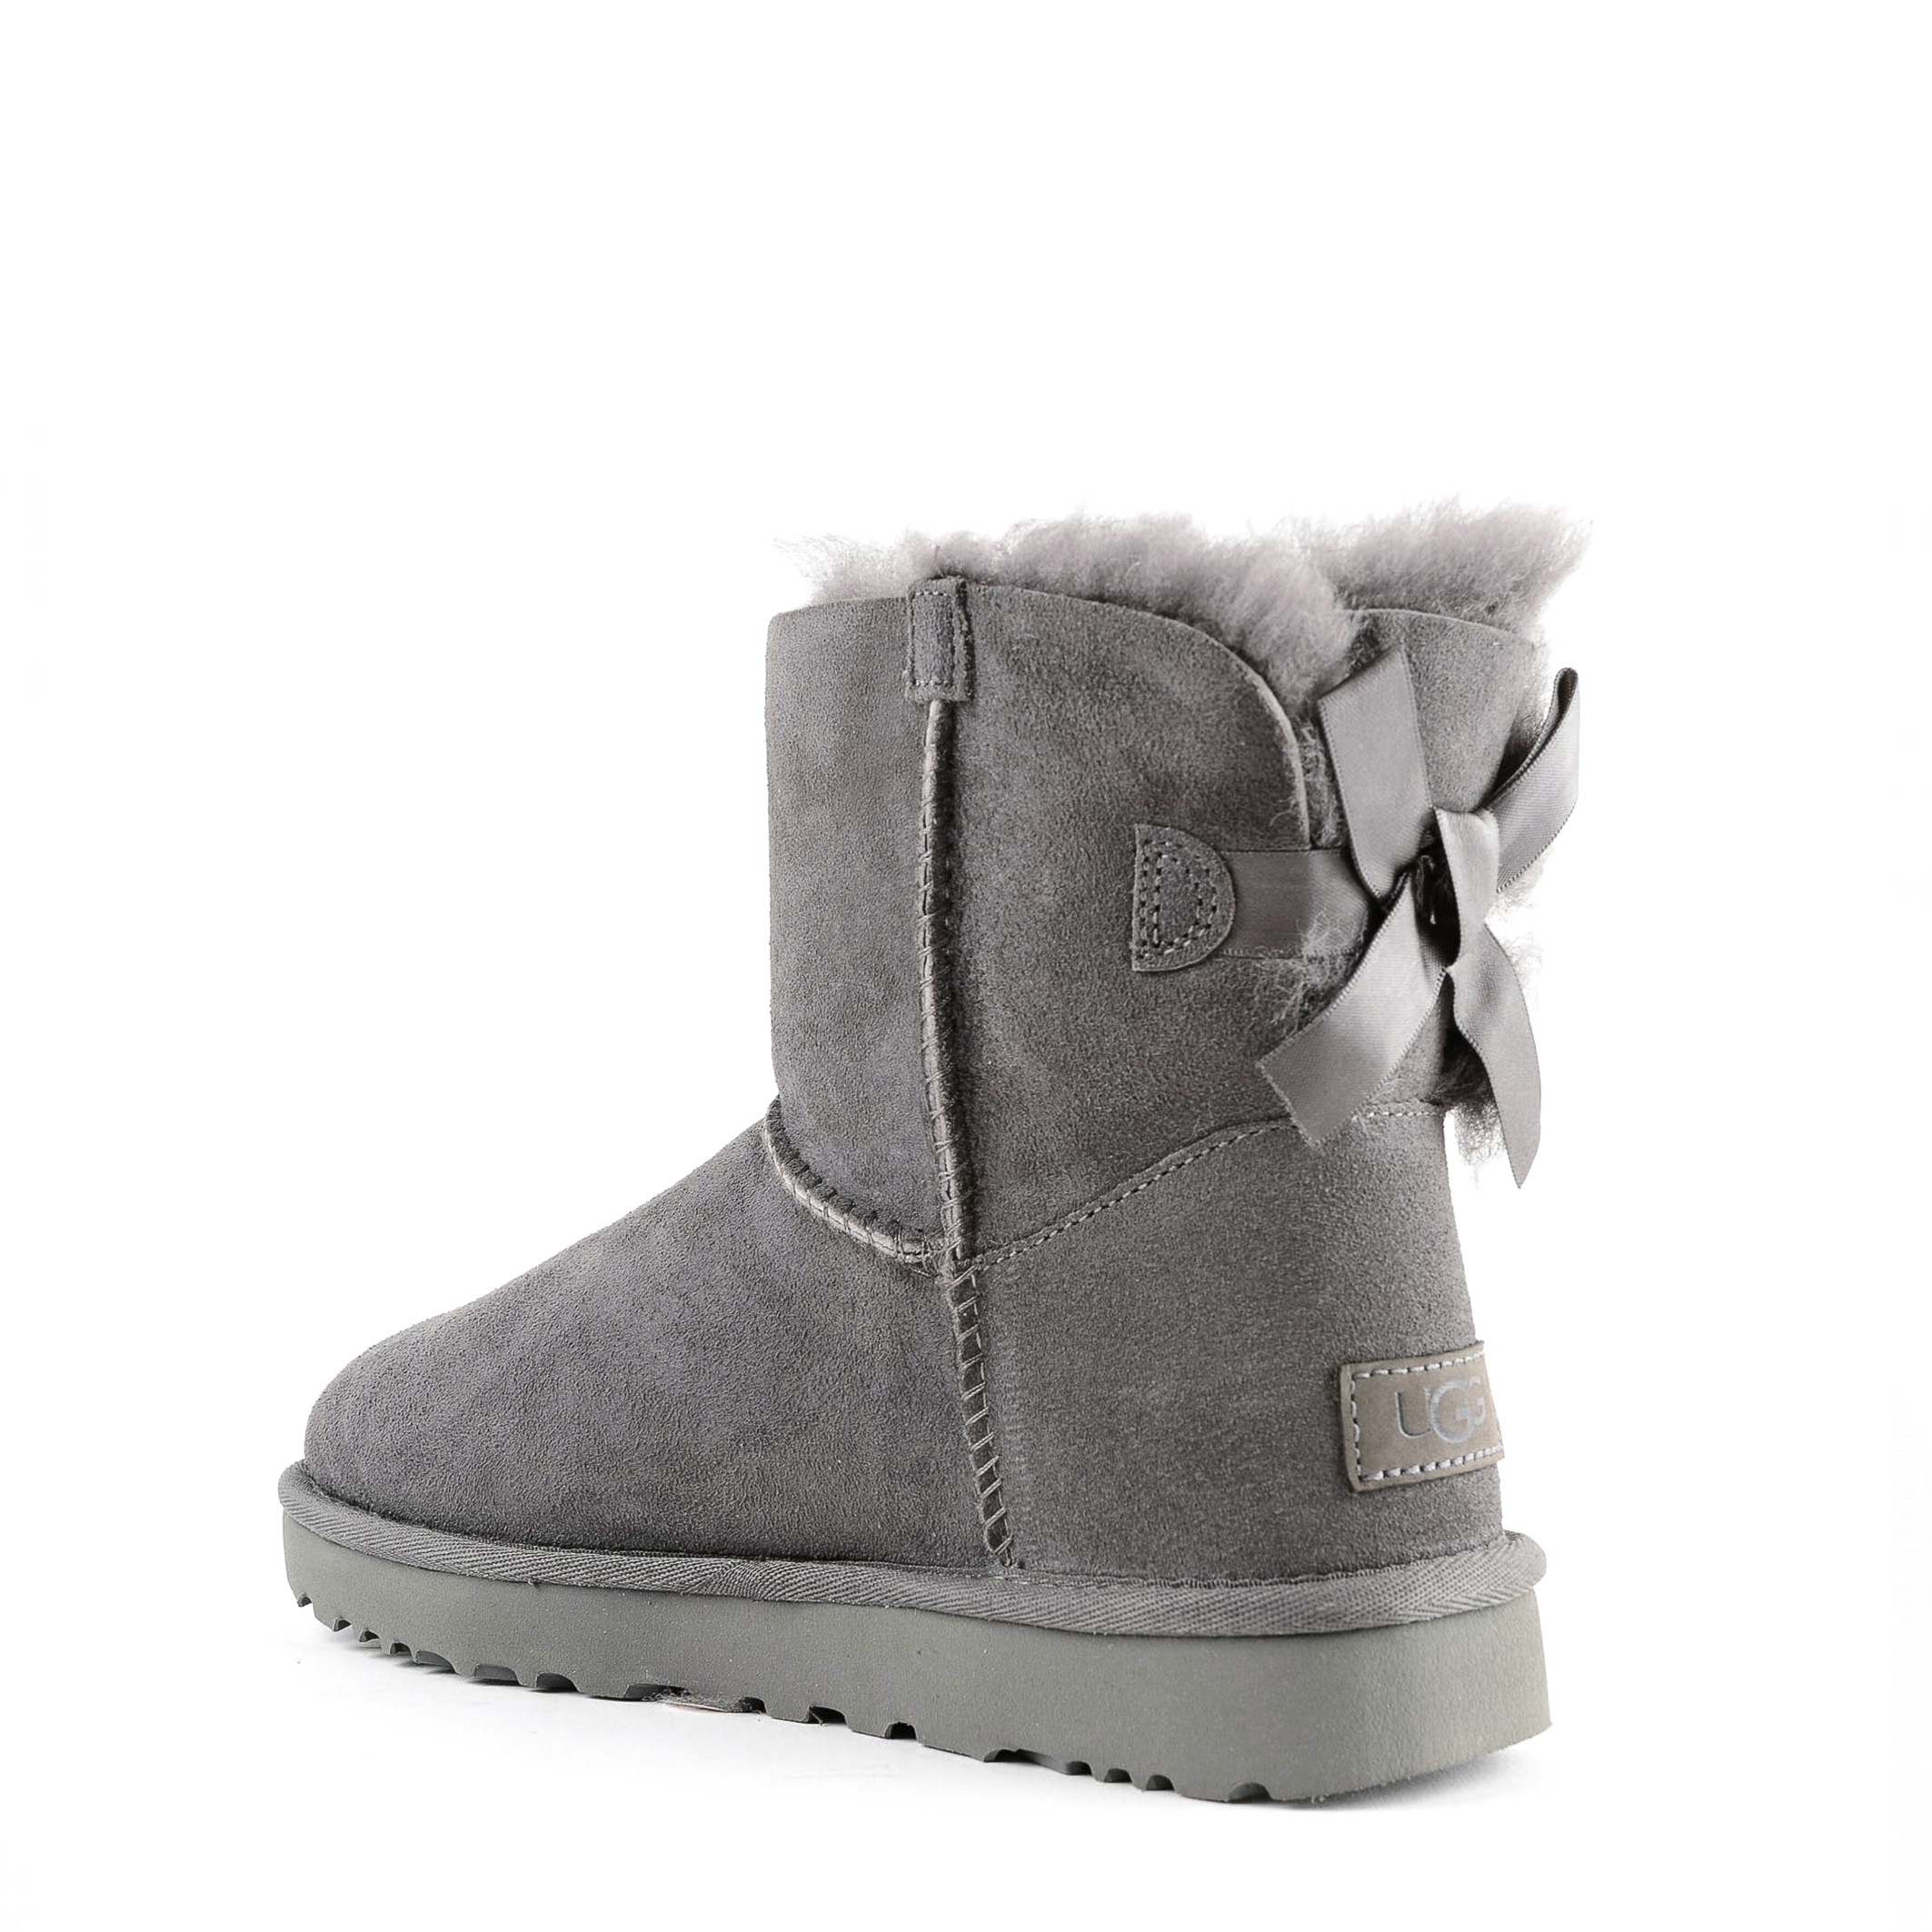 Chaussures  Ugg 1016501 grey